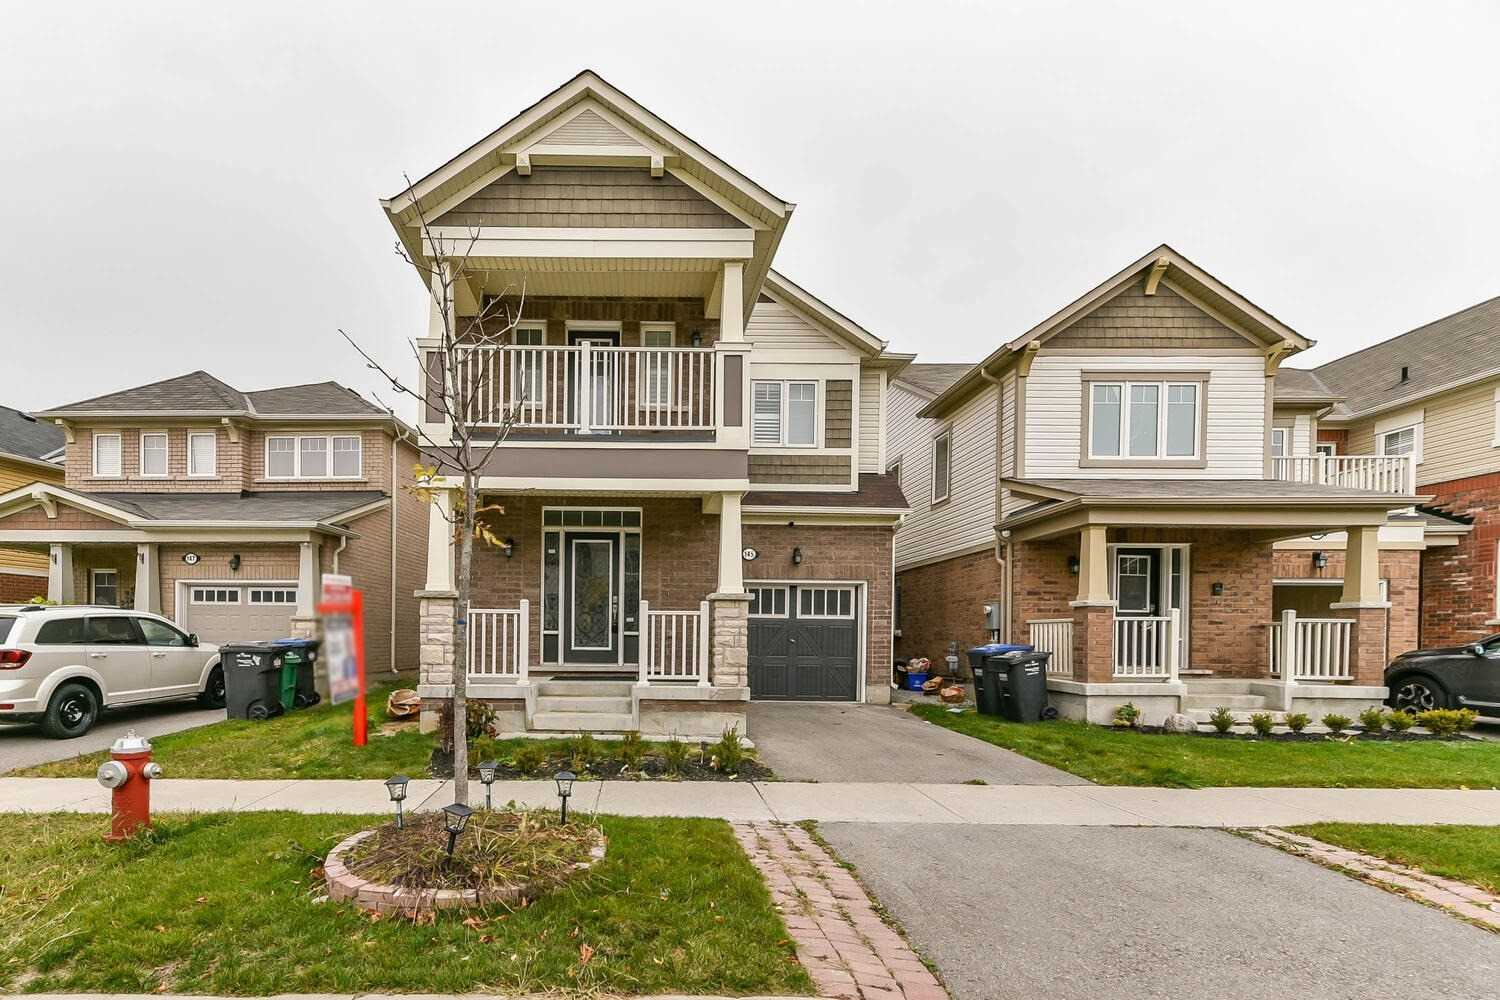 For Sale: 145 Vanhorne Close, Brampton, ON | 4 Bed, 3 Bath House for $849900.00. See 1 photos!